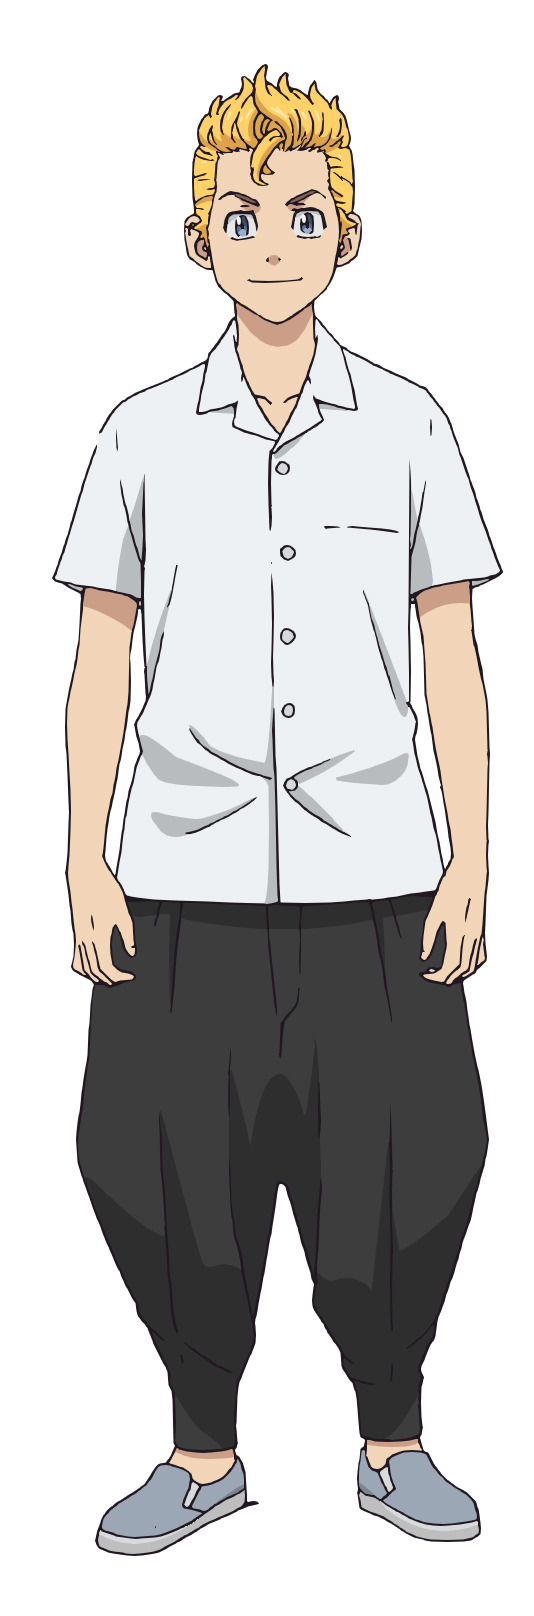 A character setting of protagonist Takemichi Hanagaki as a middle school delinquent from the upcoming Tokyo Revengers TV anime.